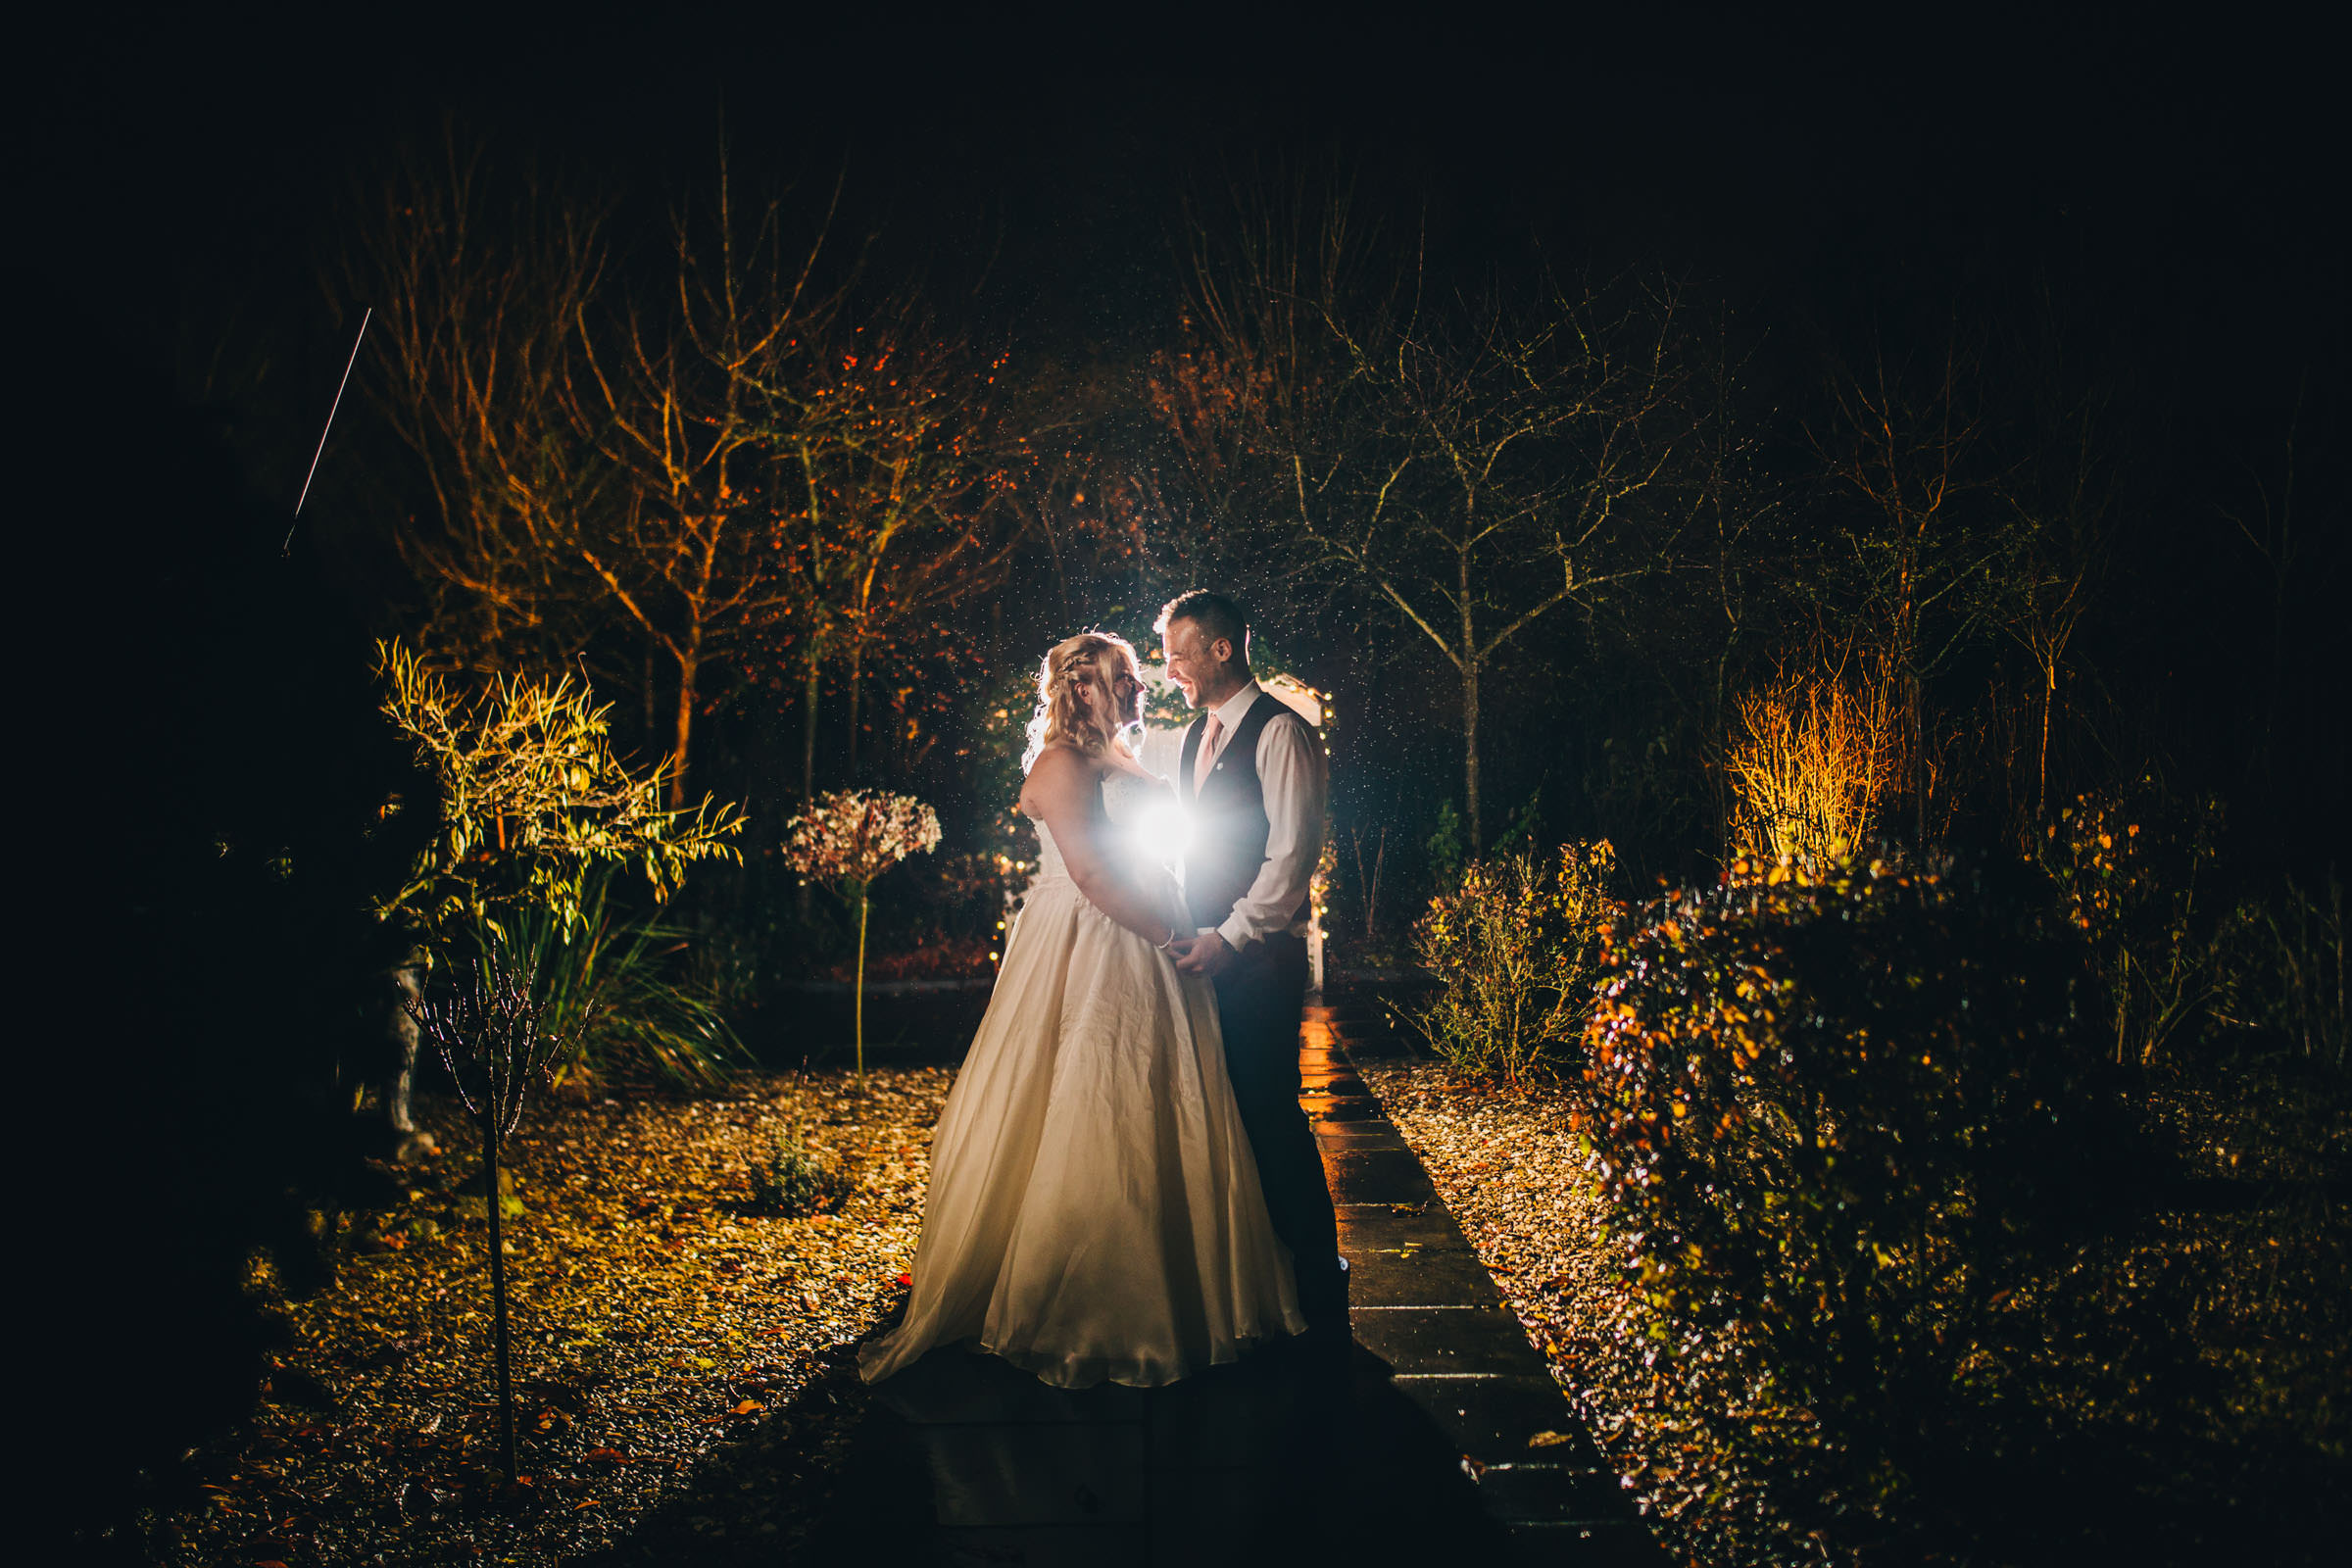 evening pictures - bride and groom